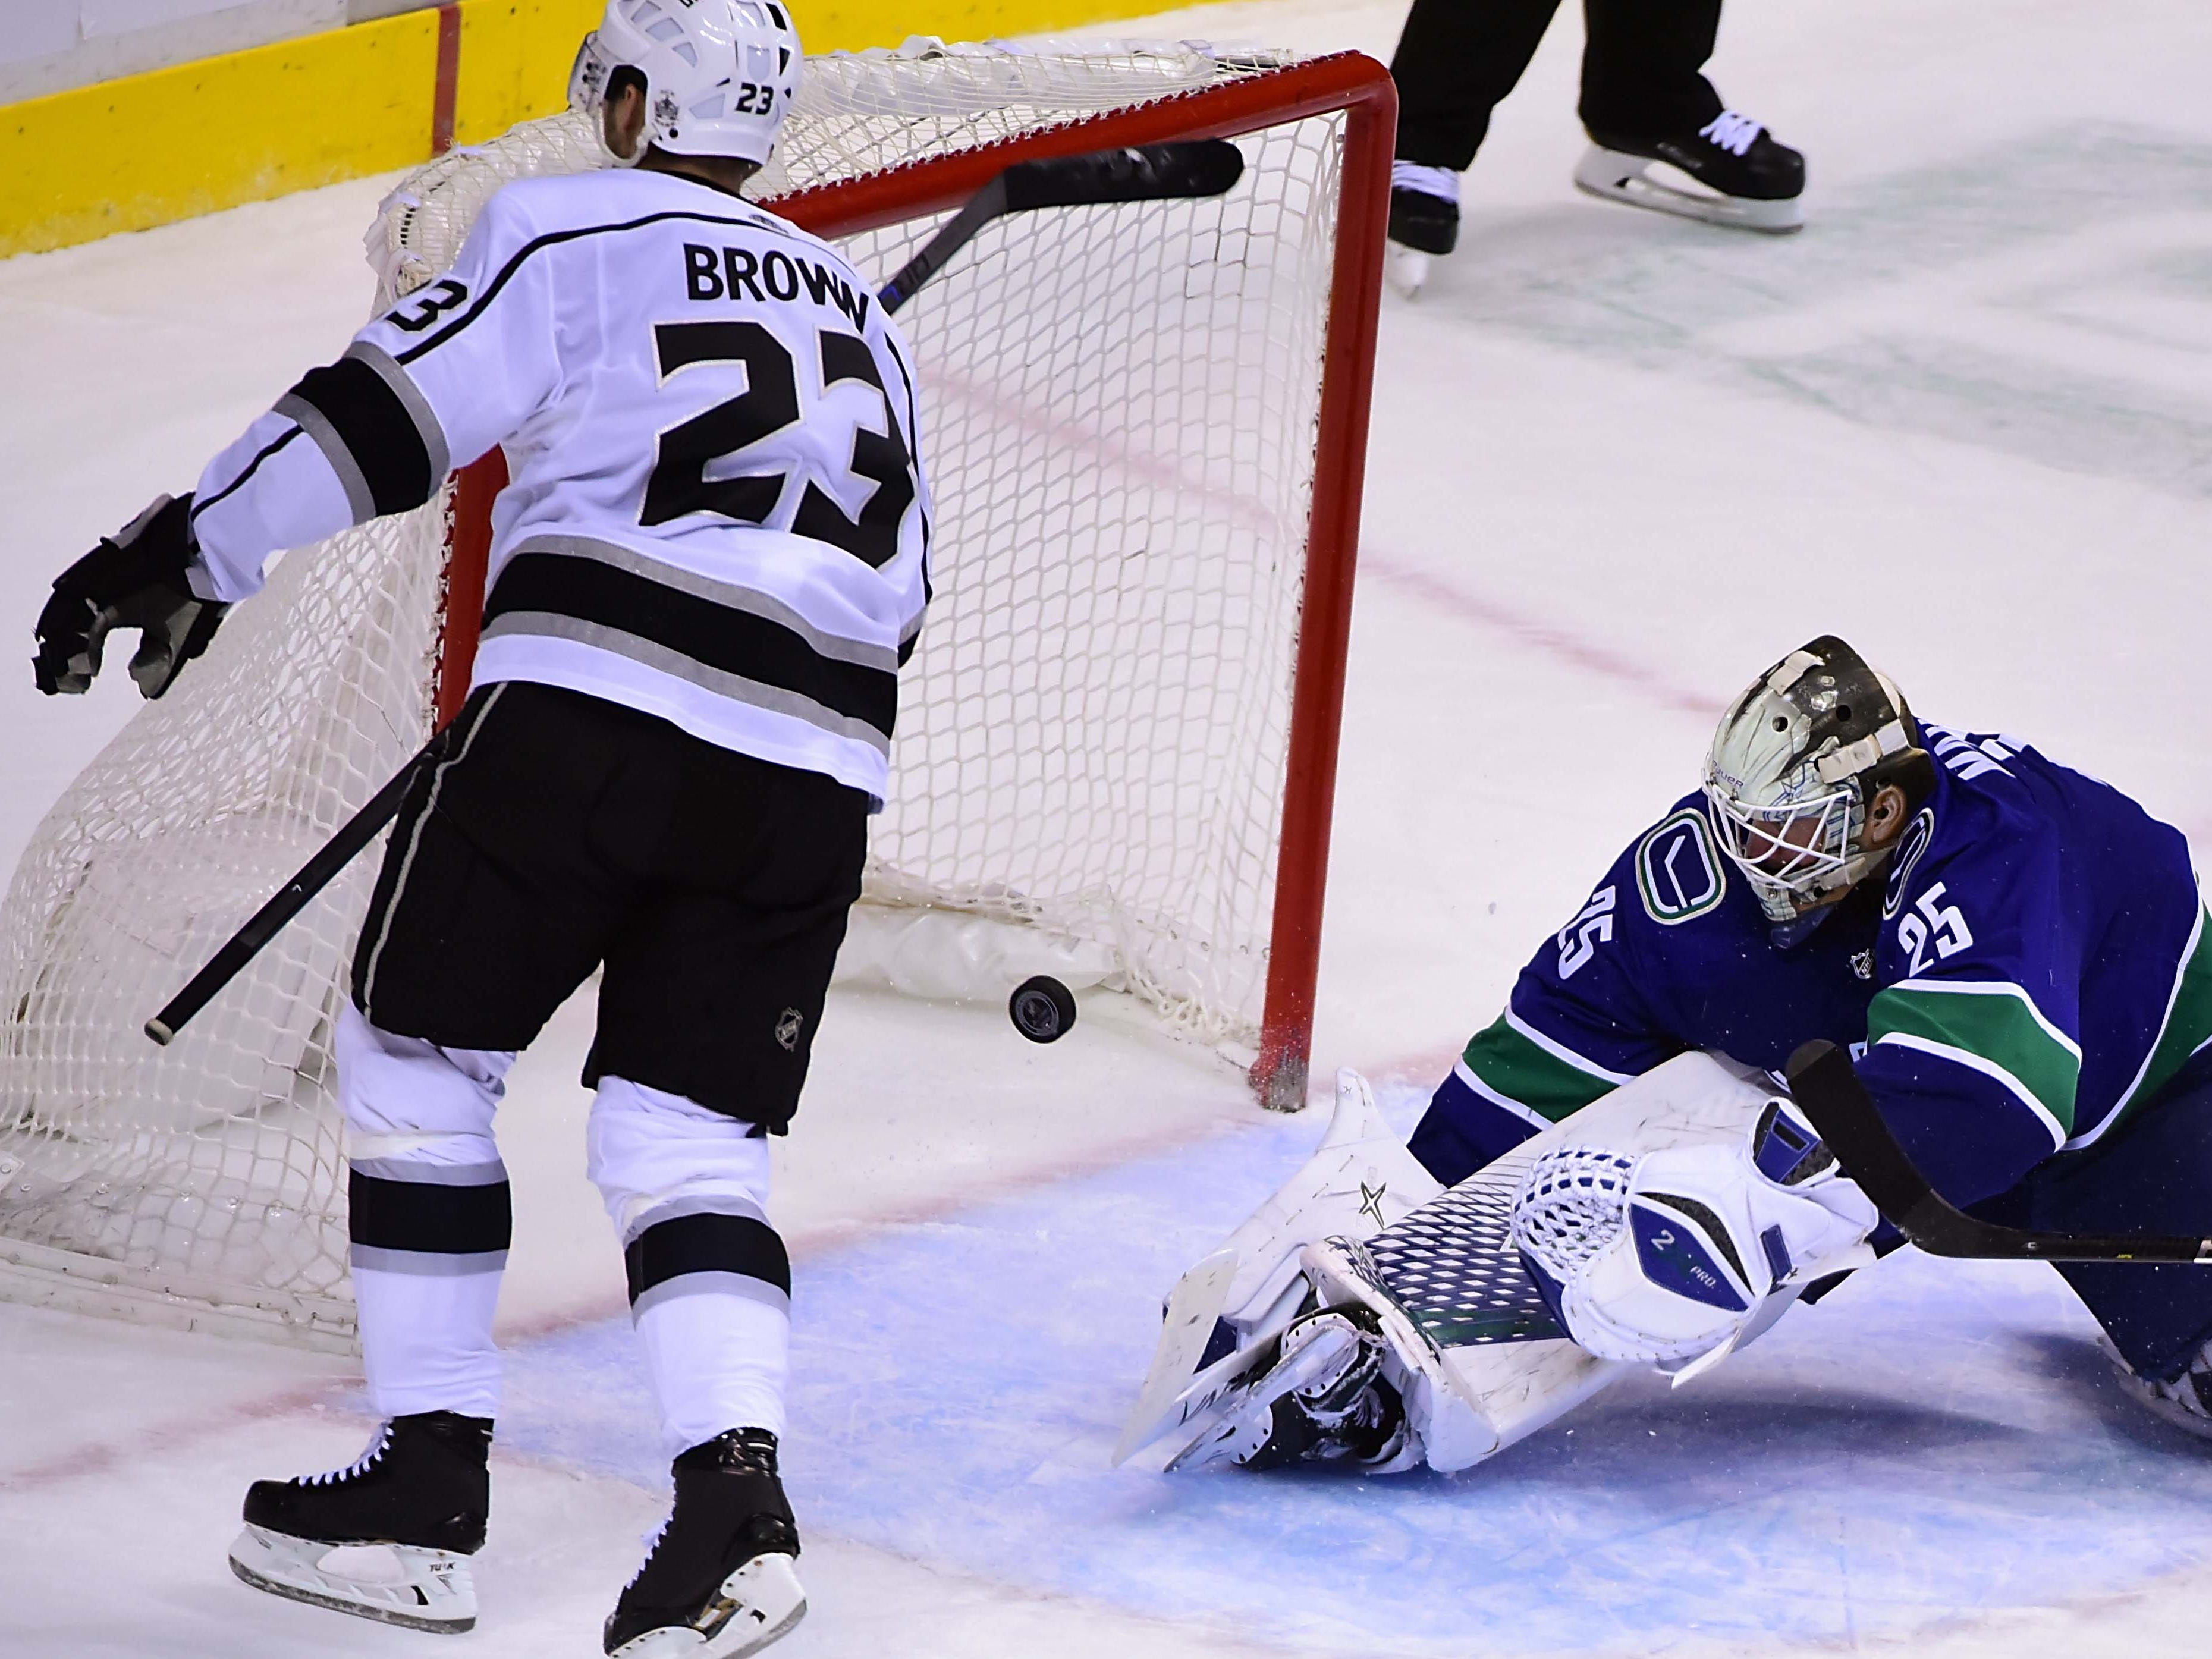 Los Angeles Kings forward Dustin Brown scored in overtime against the Vancouver Canucks to stay hot. He had a hat trick in his previous game.